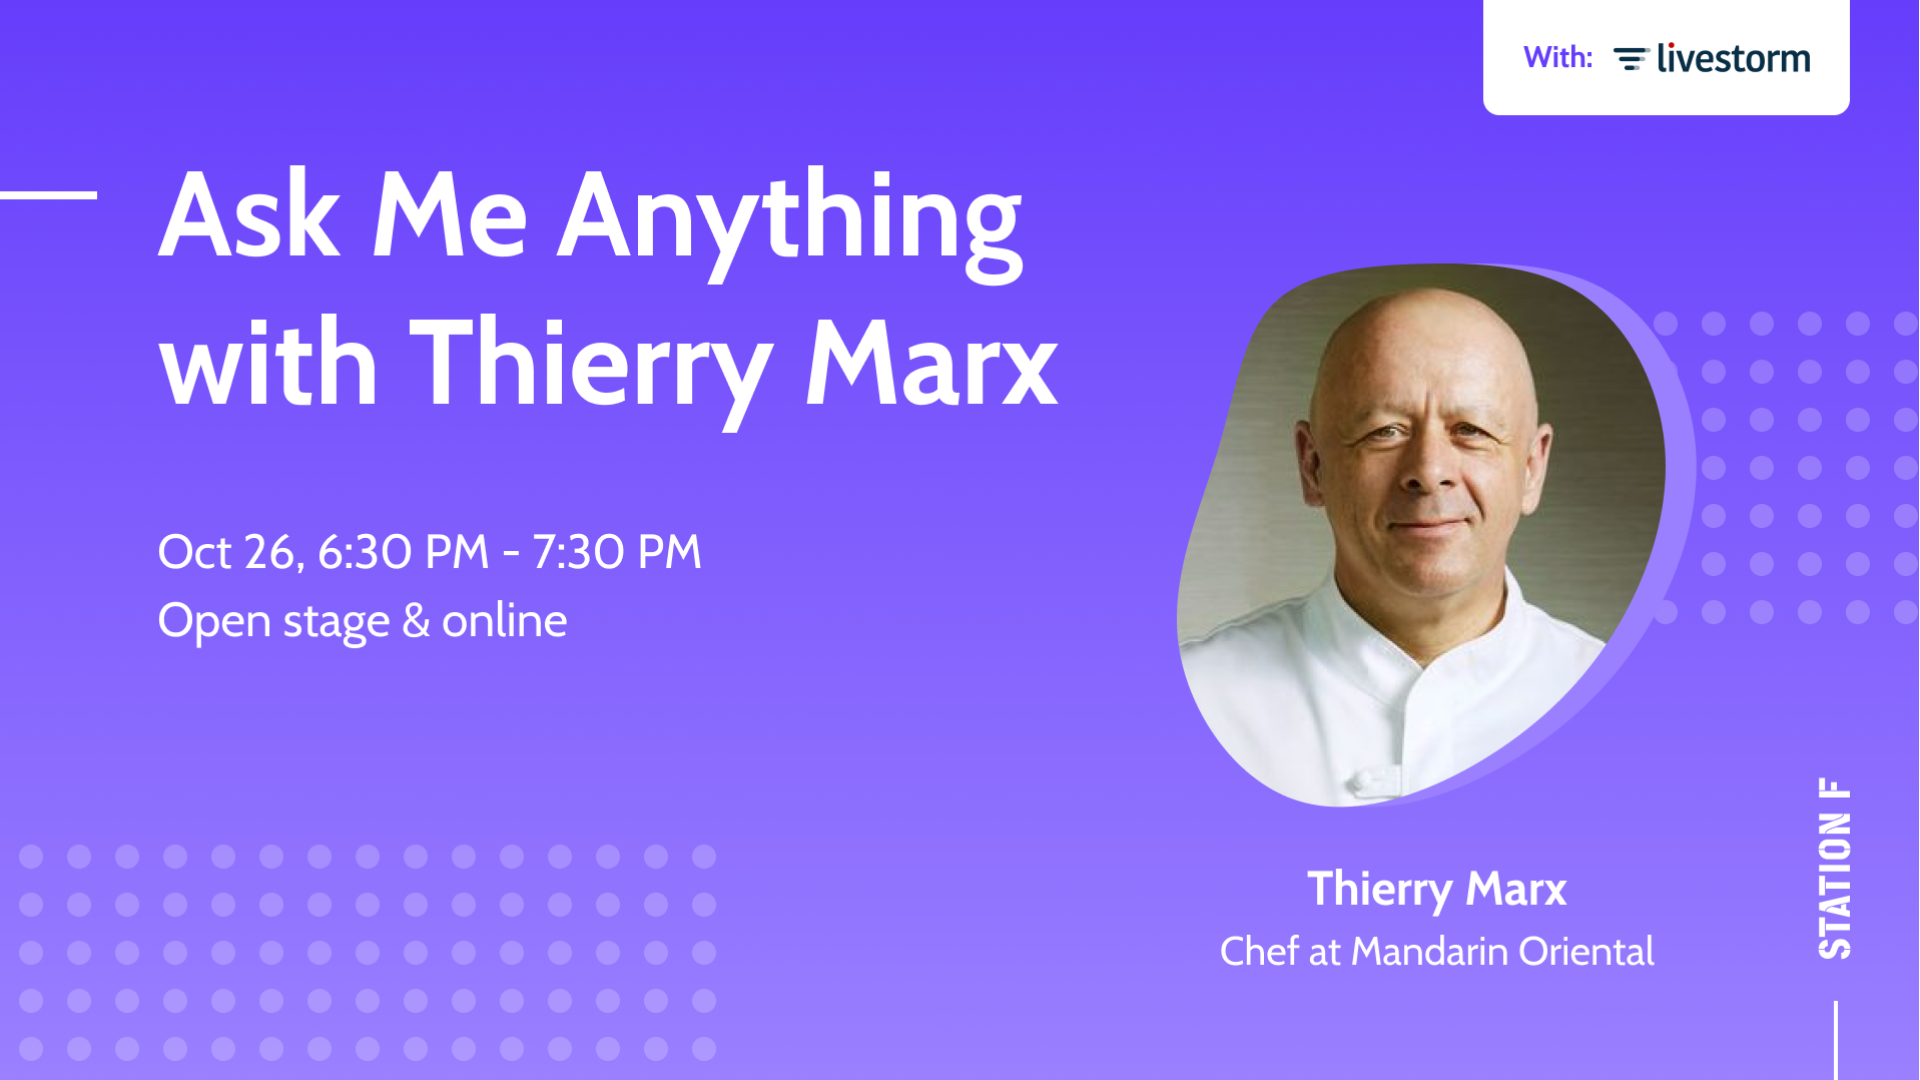 Thumbnail for event Ask Me Anything with Thierry Marx